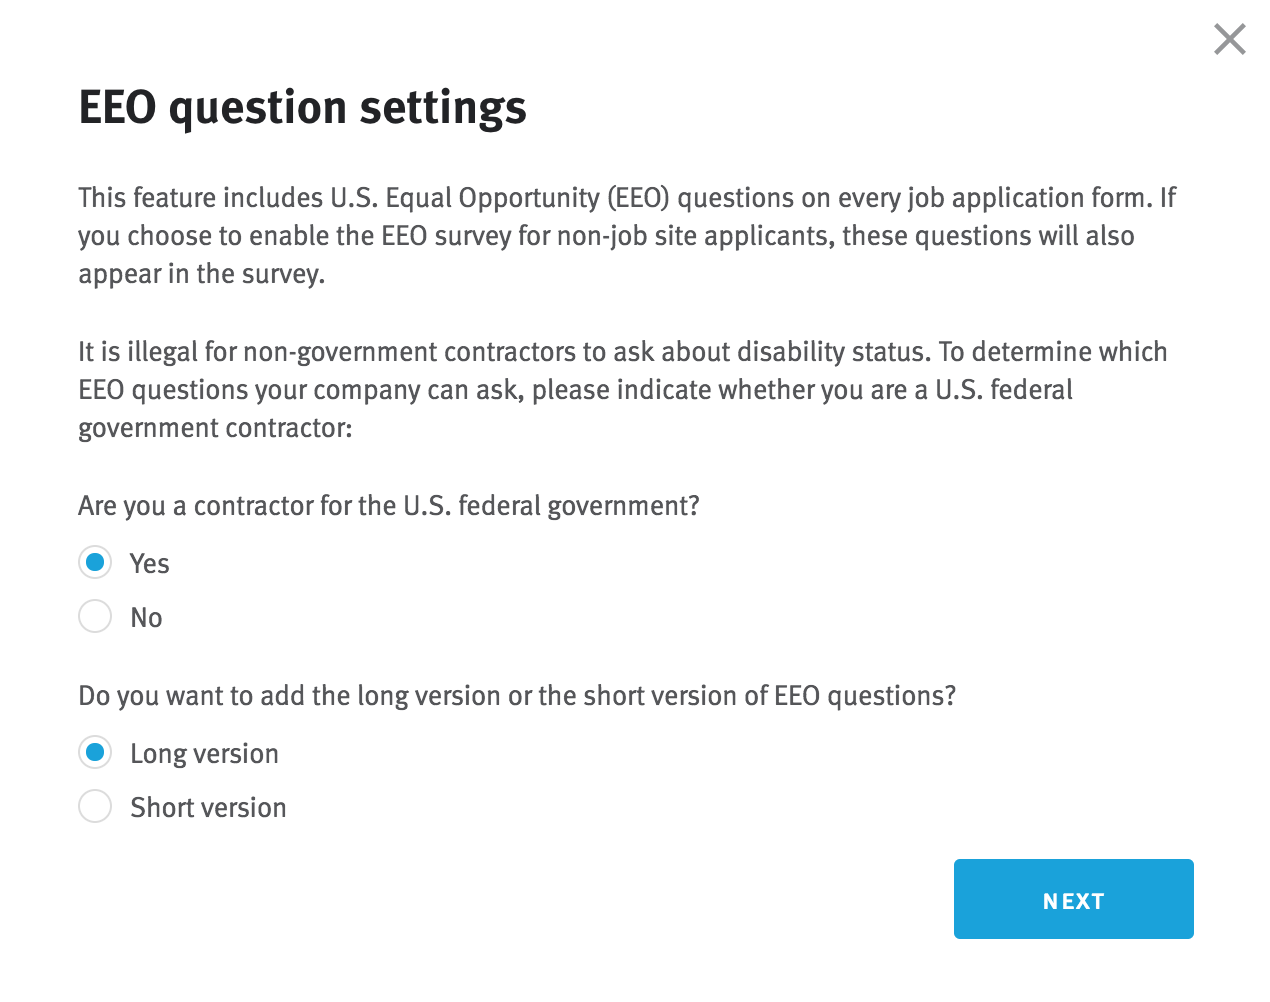 How do I enable EEO questions and export candidate responses ...